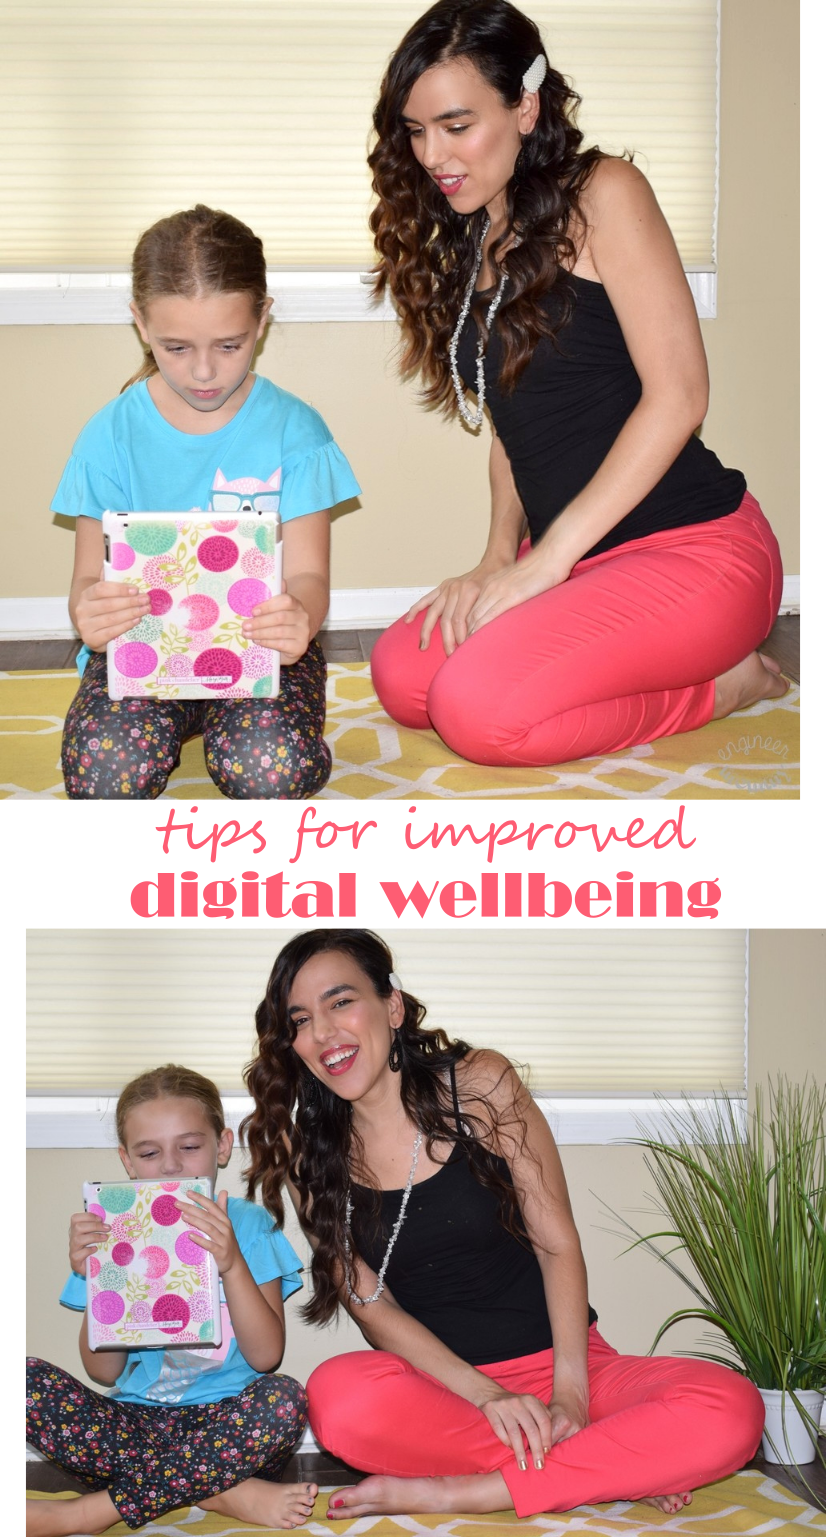 Tips to Improve Your Digital Wellbeing